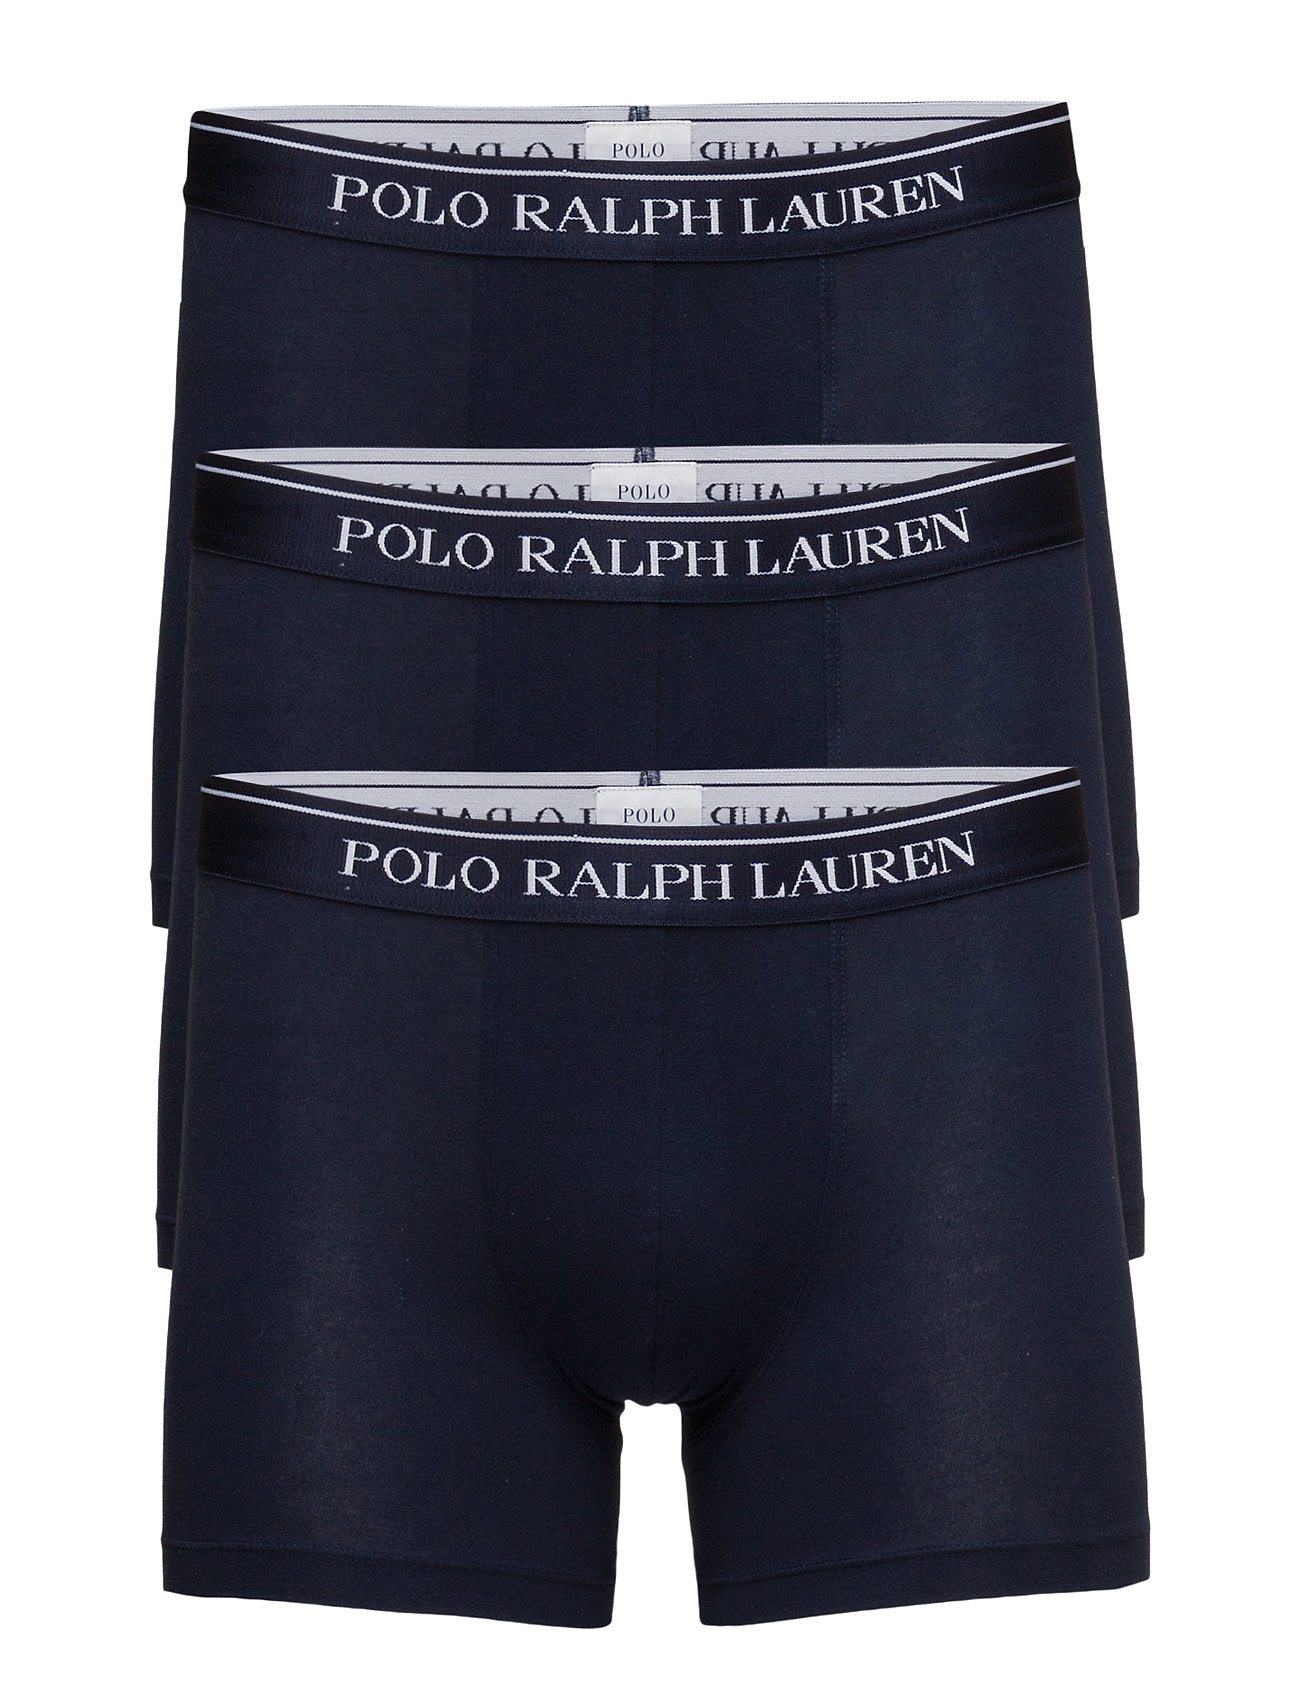 5c500e285c Stretch-cotton-trunk 3-pack (3pk Cr Nvy) (£40) - Polo Ralph Lauren ...